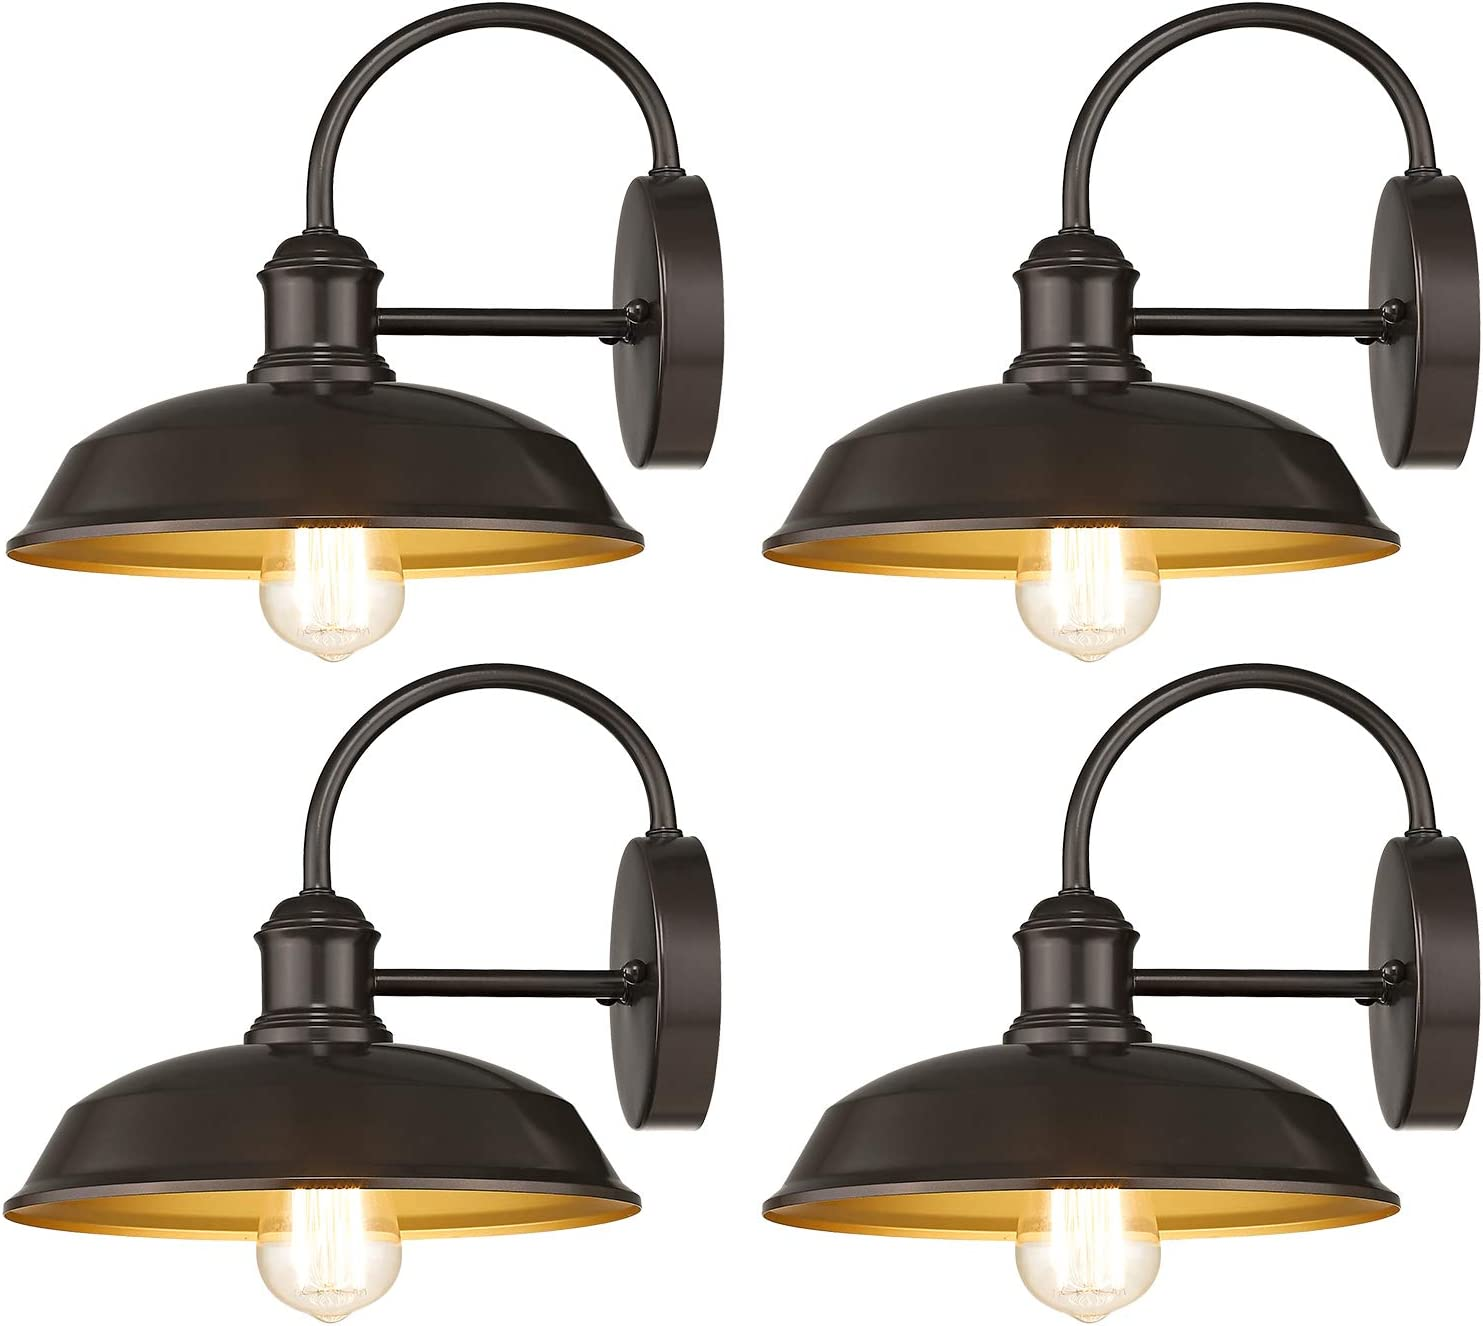 Odeums Farmhouse Barn Direct sale of manufacturer Lights Outdoor Phoenix Mall Exterior Wall